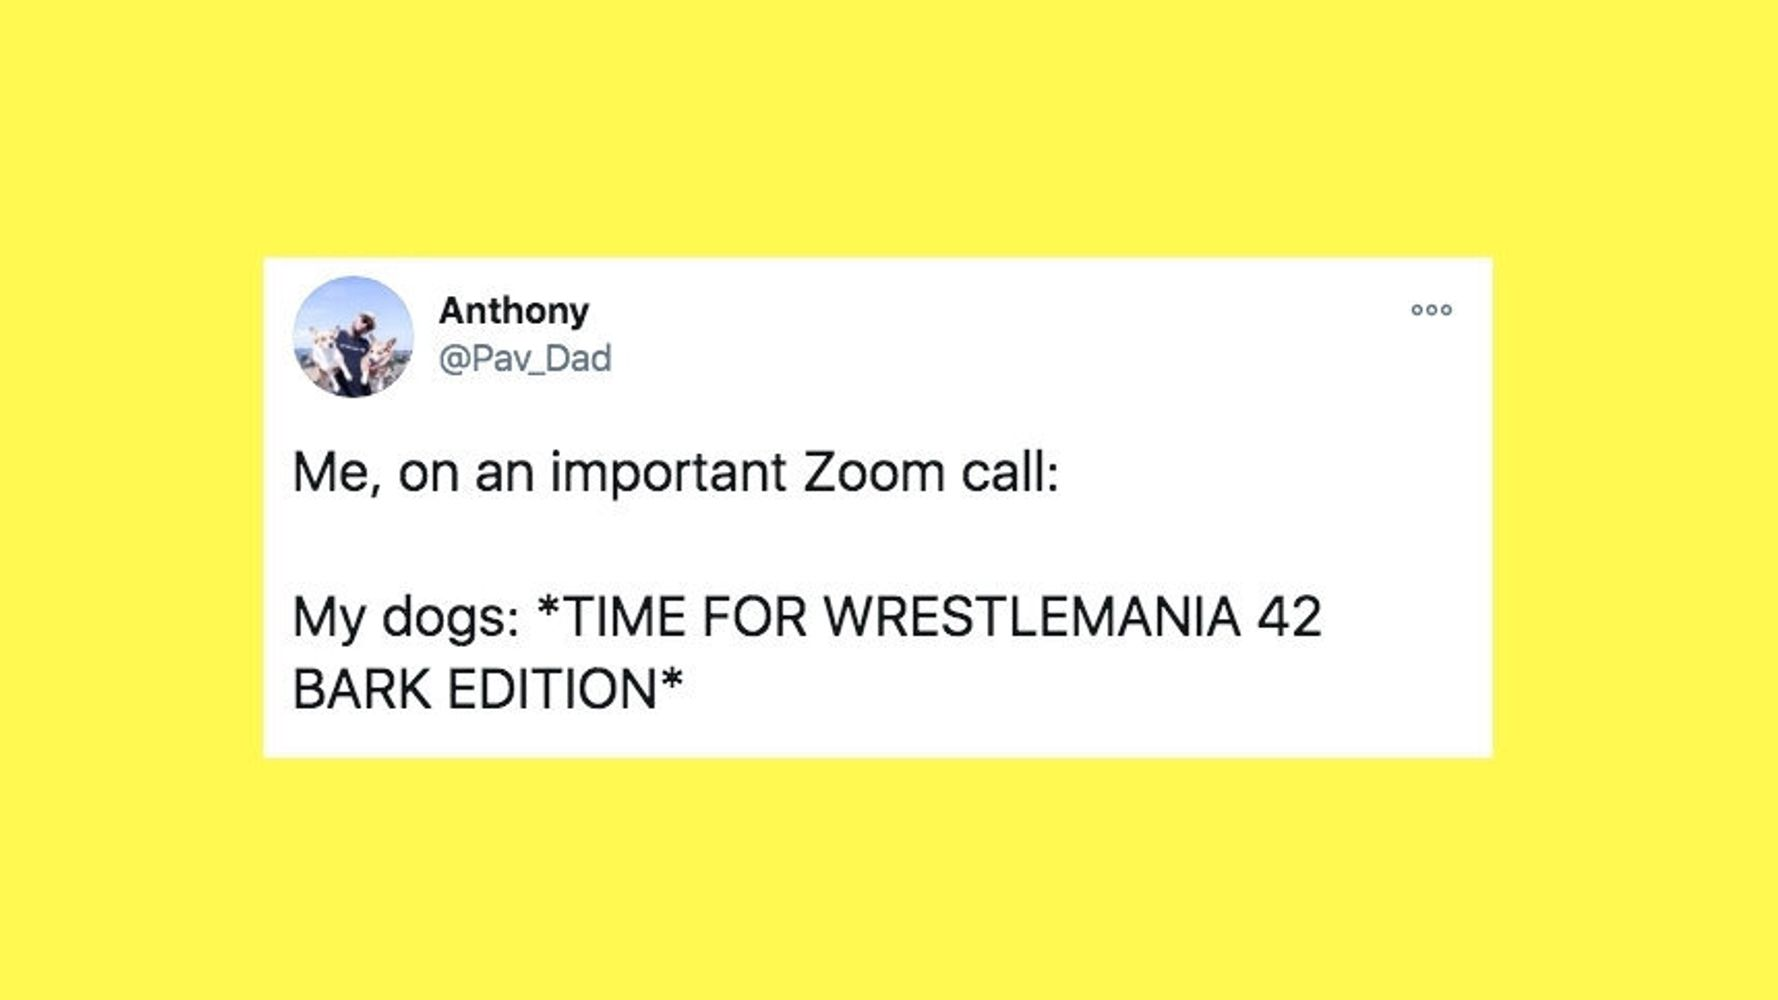 23 Of The Funniest Tweets About Cats And Dogs This Week (Nov. 13-20)